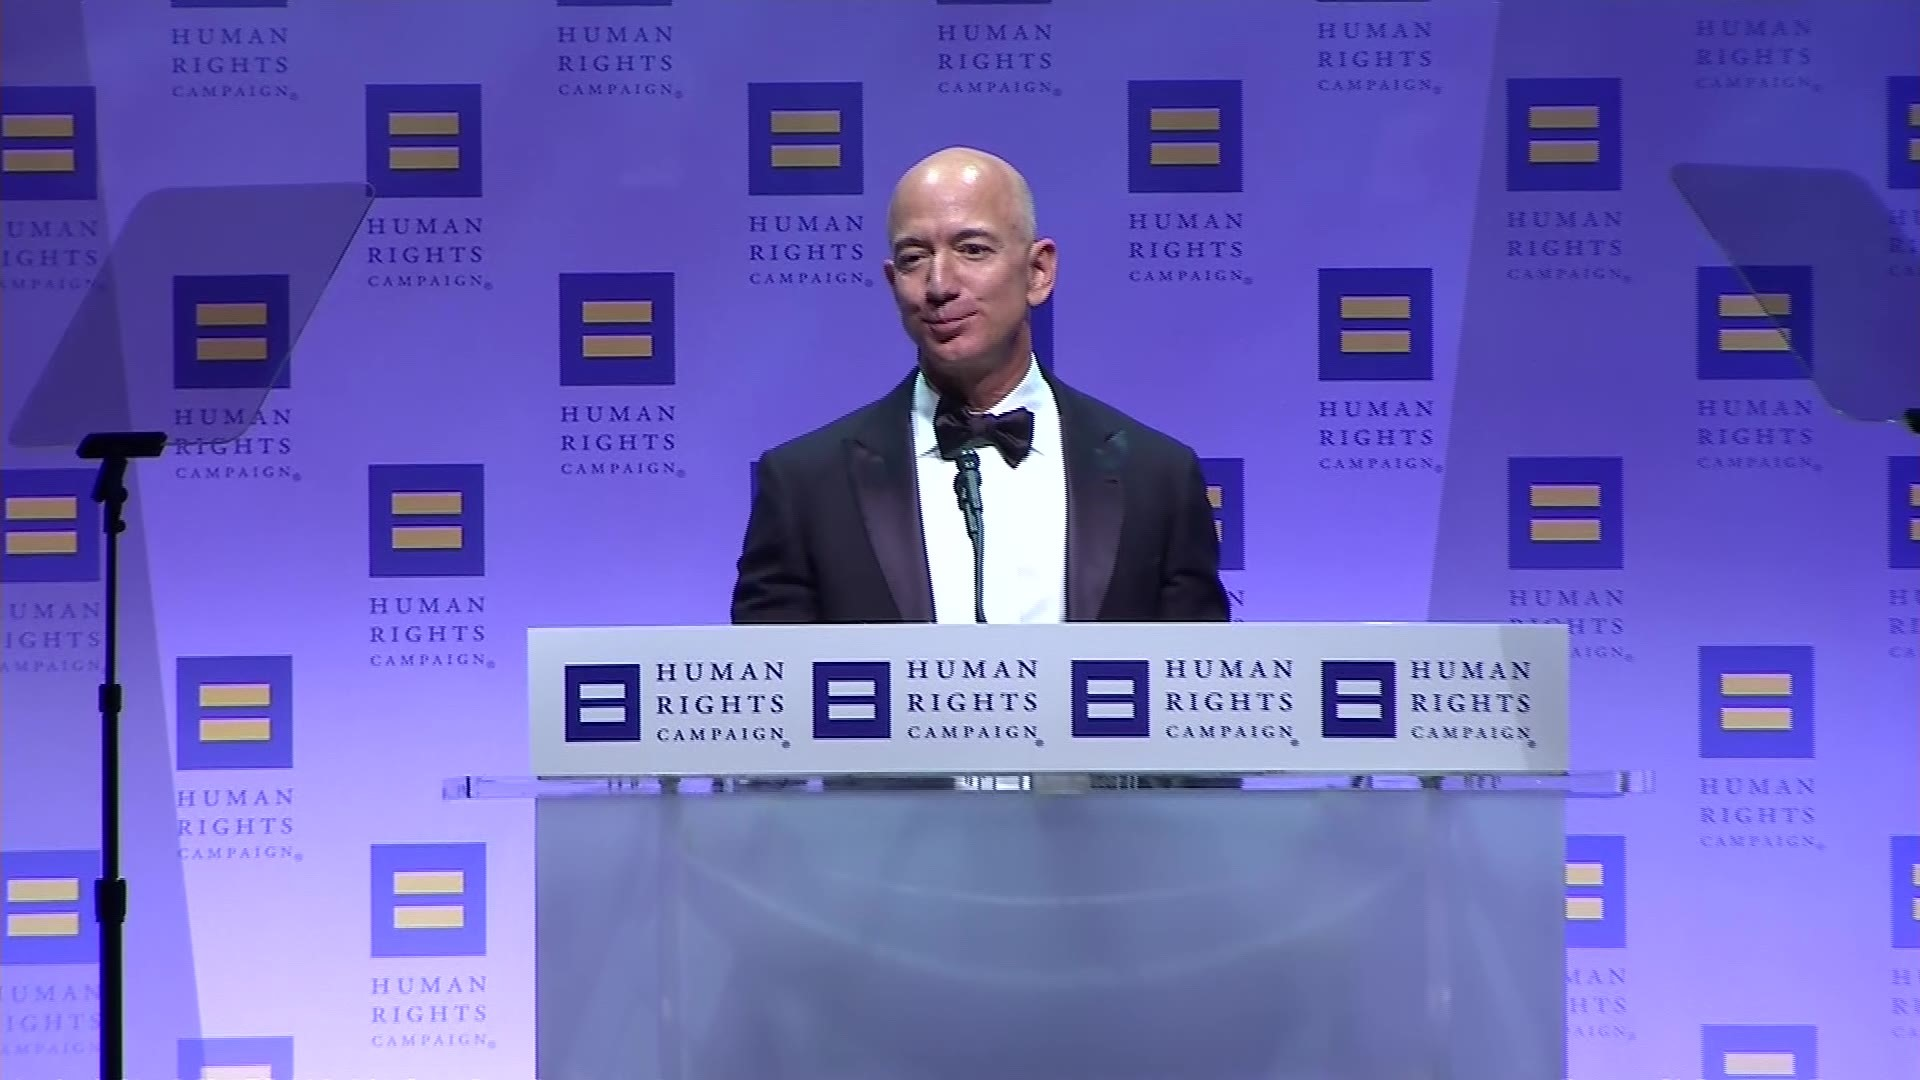 Amazon CEO Jeff Bezos pledges $10 billion to fight climate change |  localmemphis.com